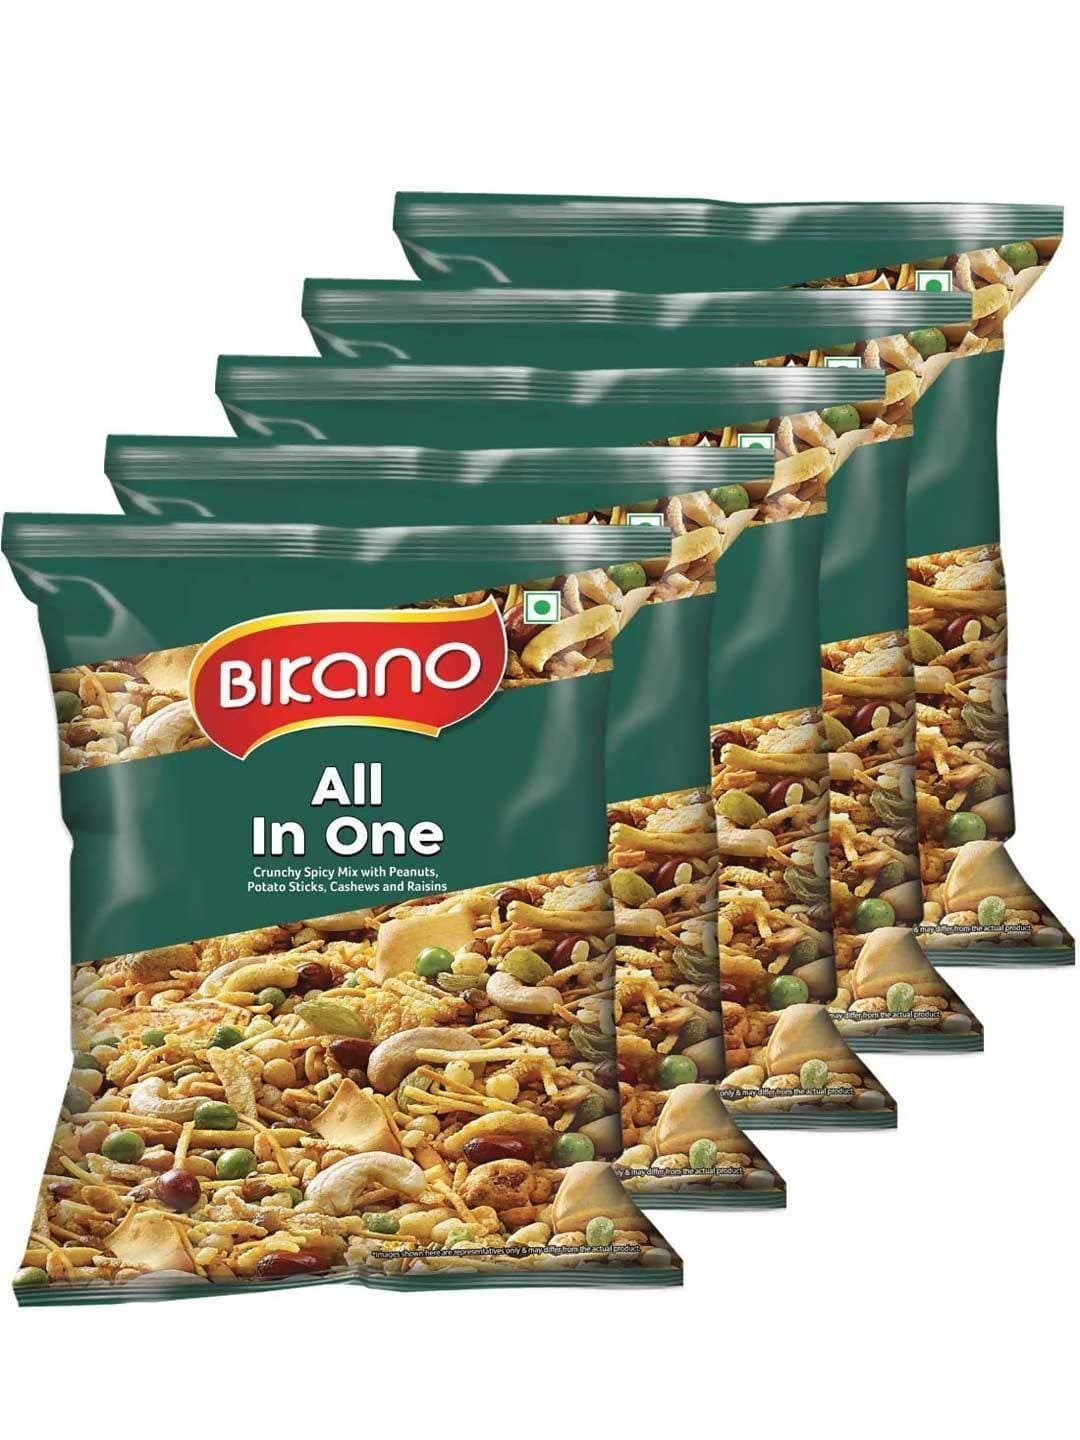 Bikano All In One Mixture